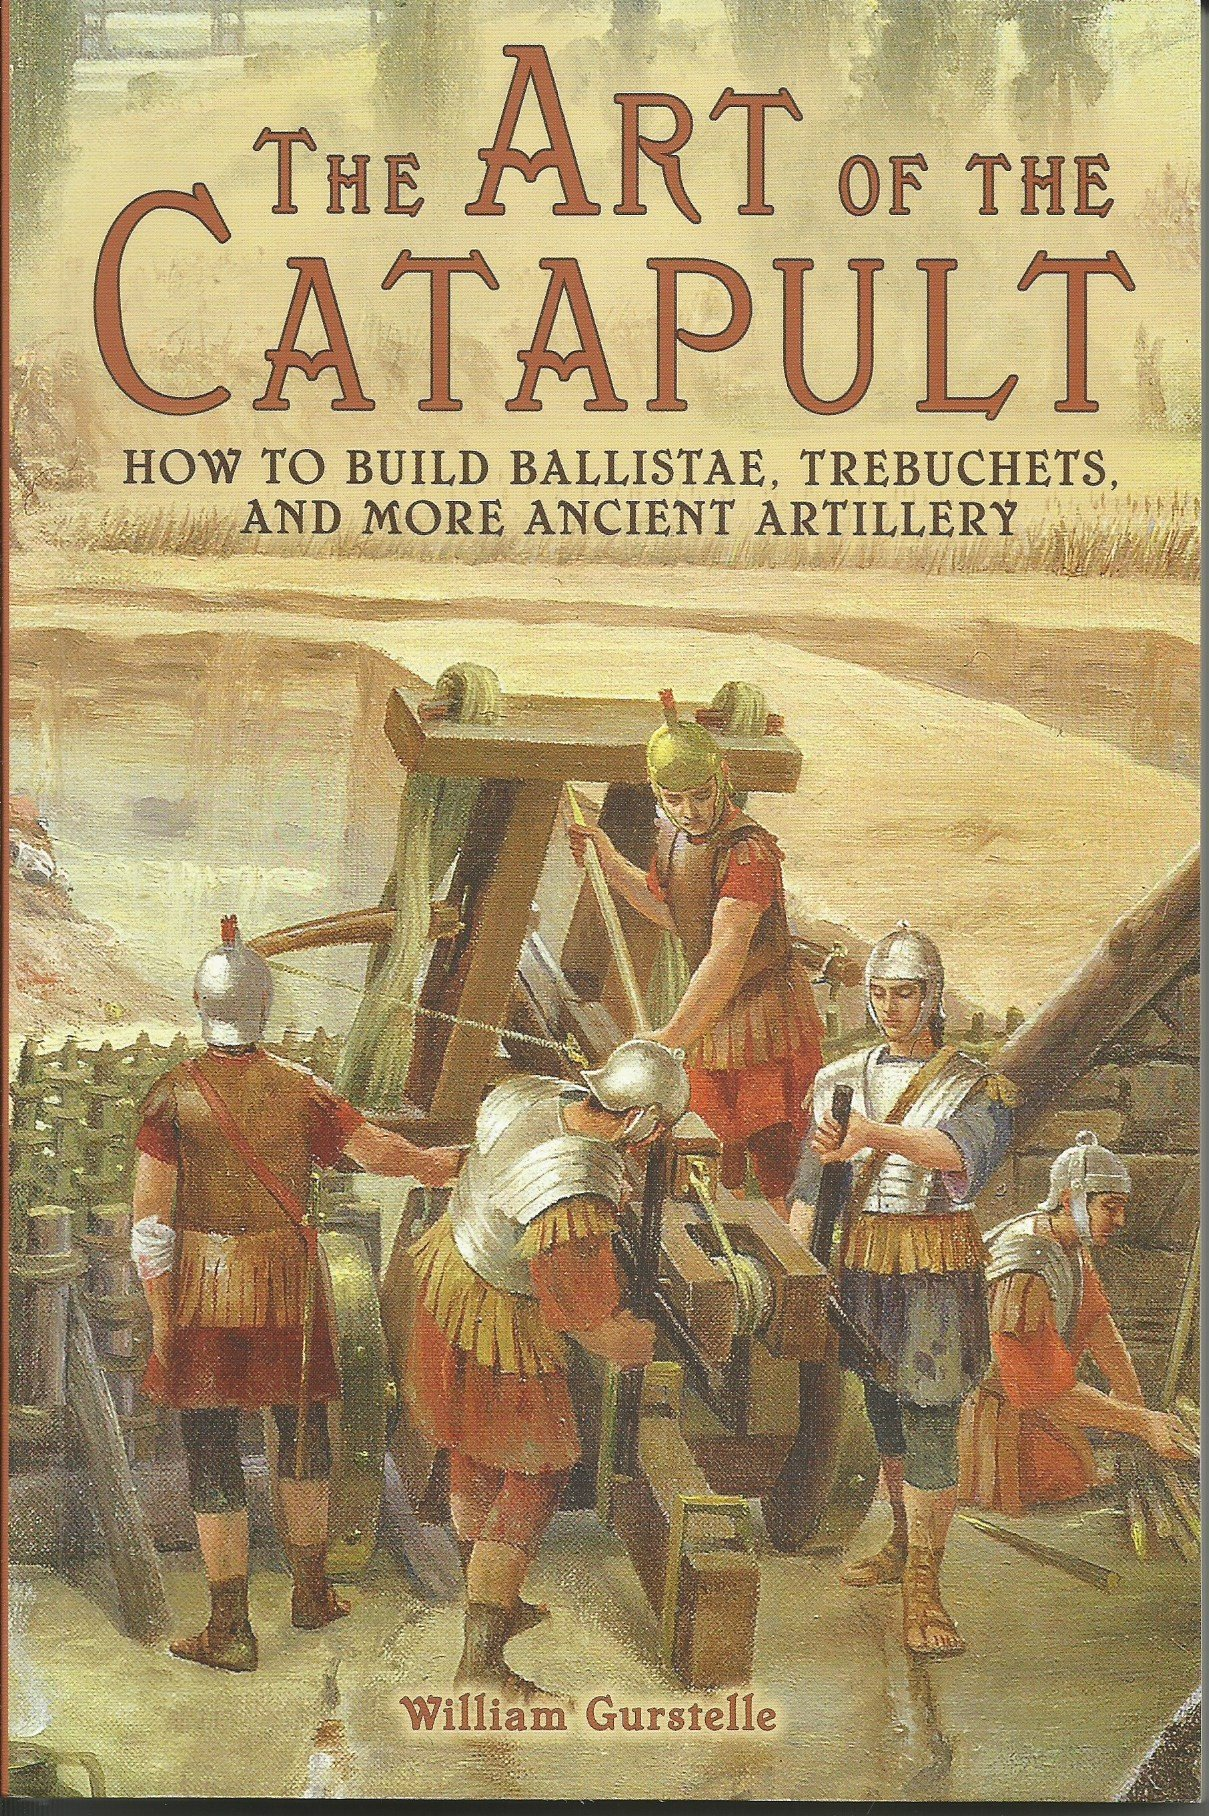 The Art of the Catapult: How to Build Ballistae, Trebuchets, and More Ancient Artillery, William Gurstelle